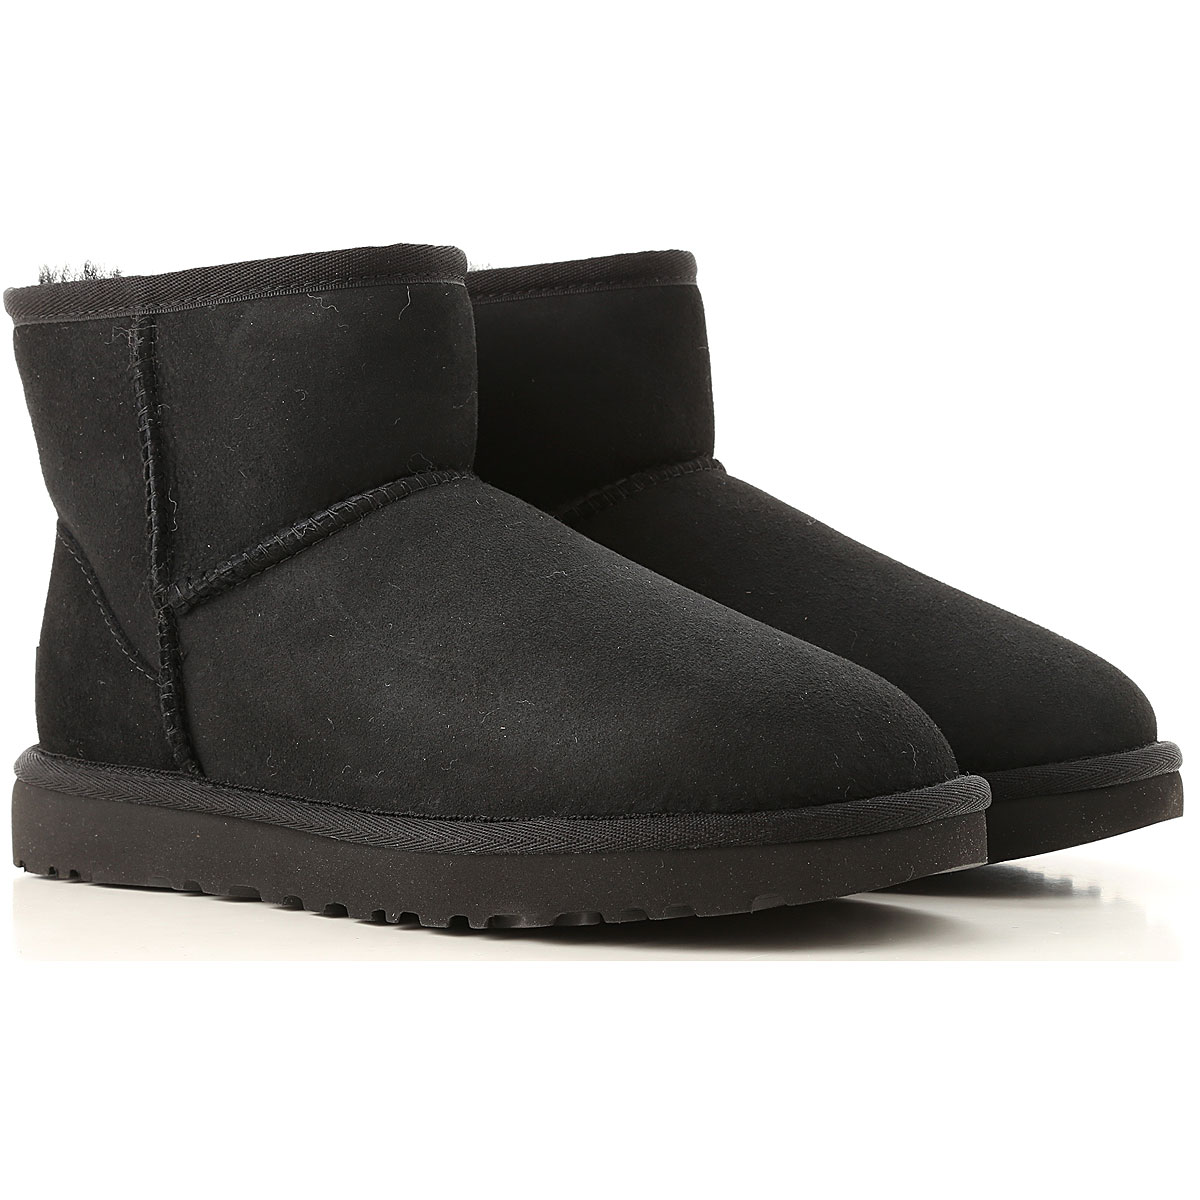 UGG Boots for Women, Booties On Sale, Black, Suede leather, 2019, USA 5 UK 3 5 EU 36 JAPAN 220 USA 6 UK 4 5 EU 37 JAPAN 230 USA 8 UK 6 5 EU 39